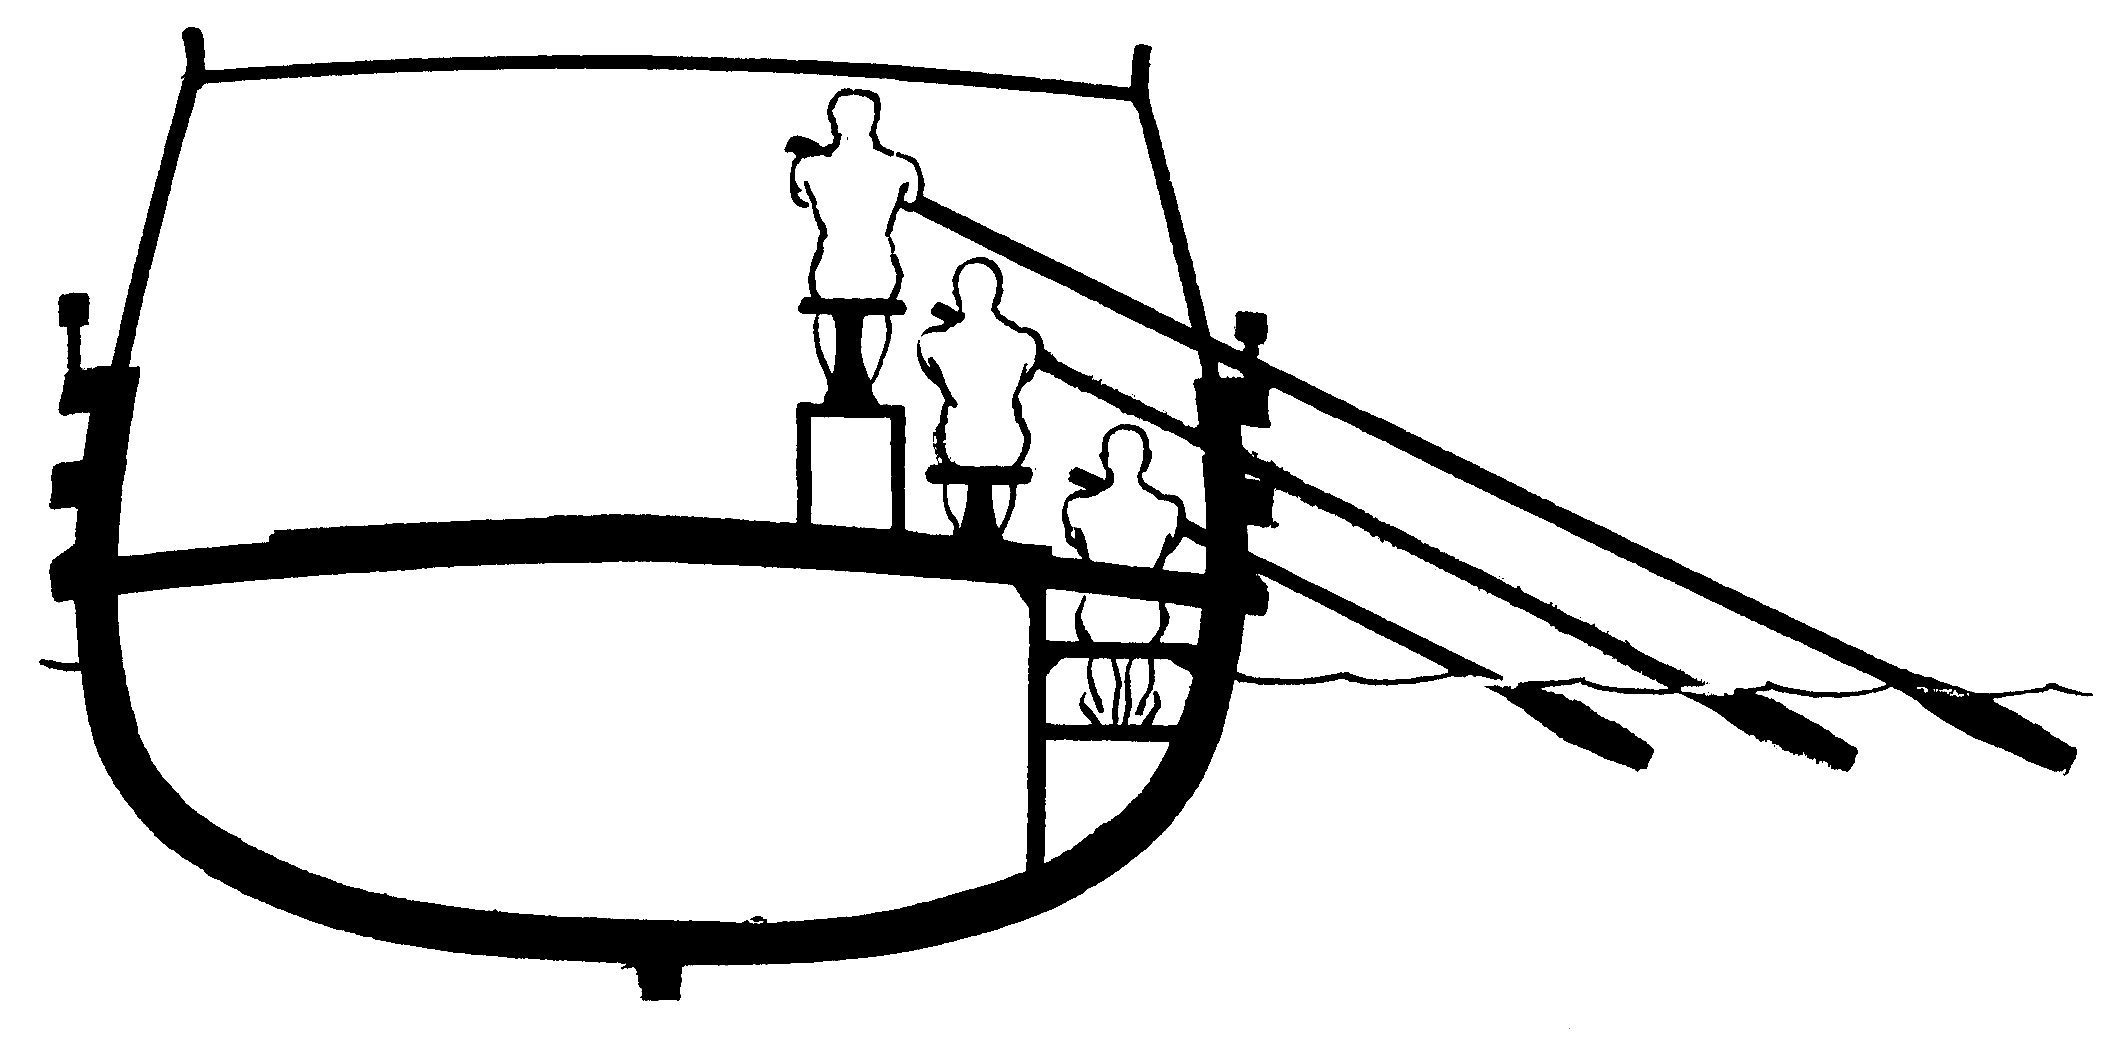 Trireme cross-section